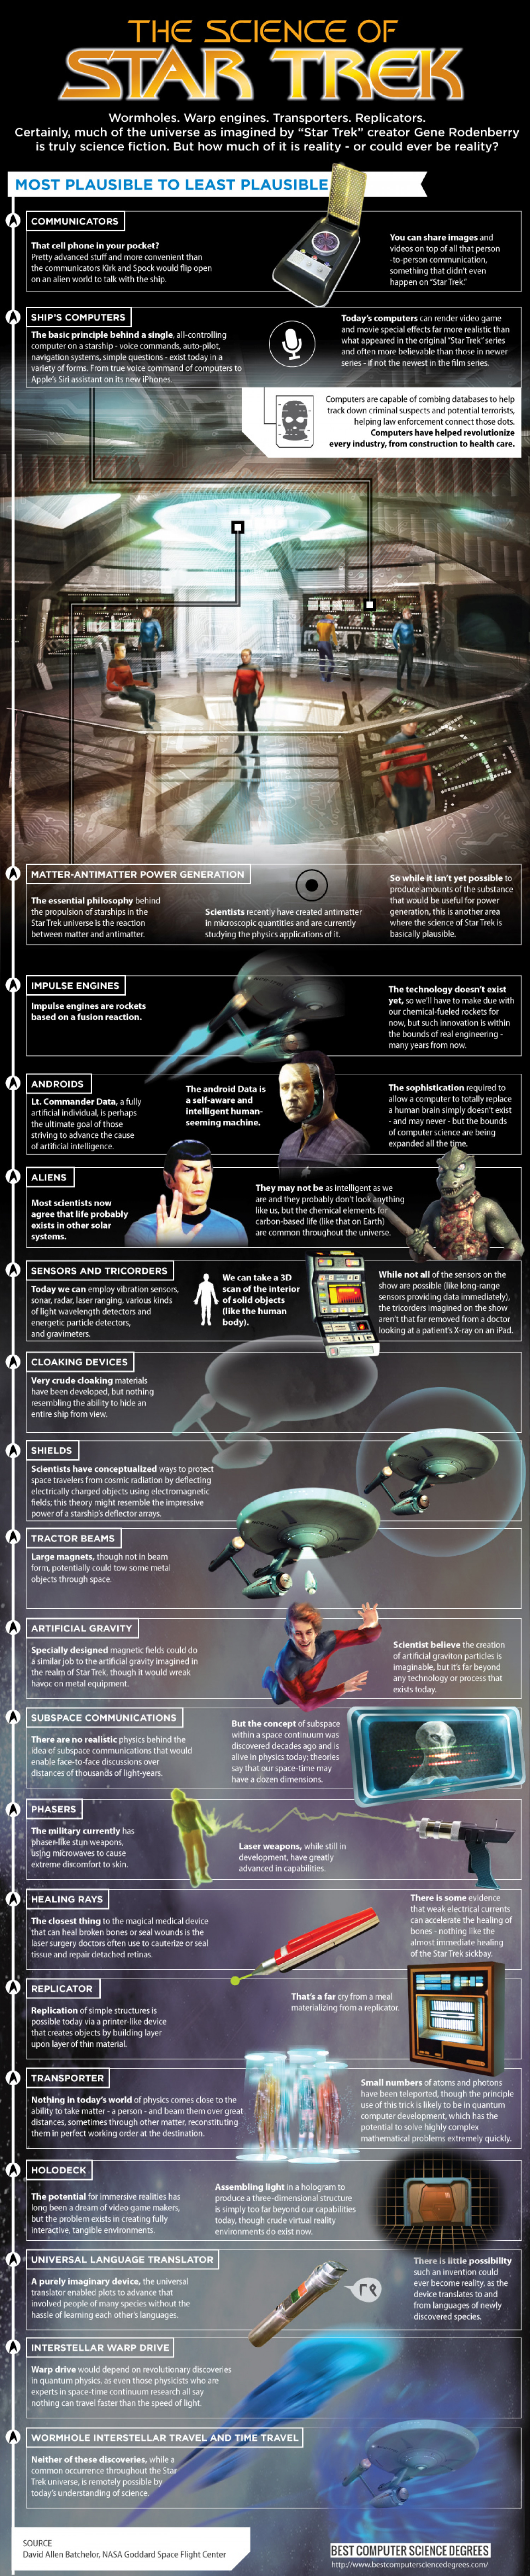 The Science of Star Trek Infographic